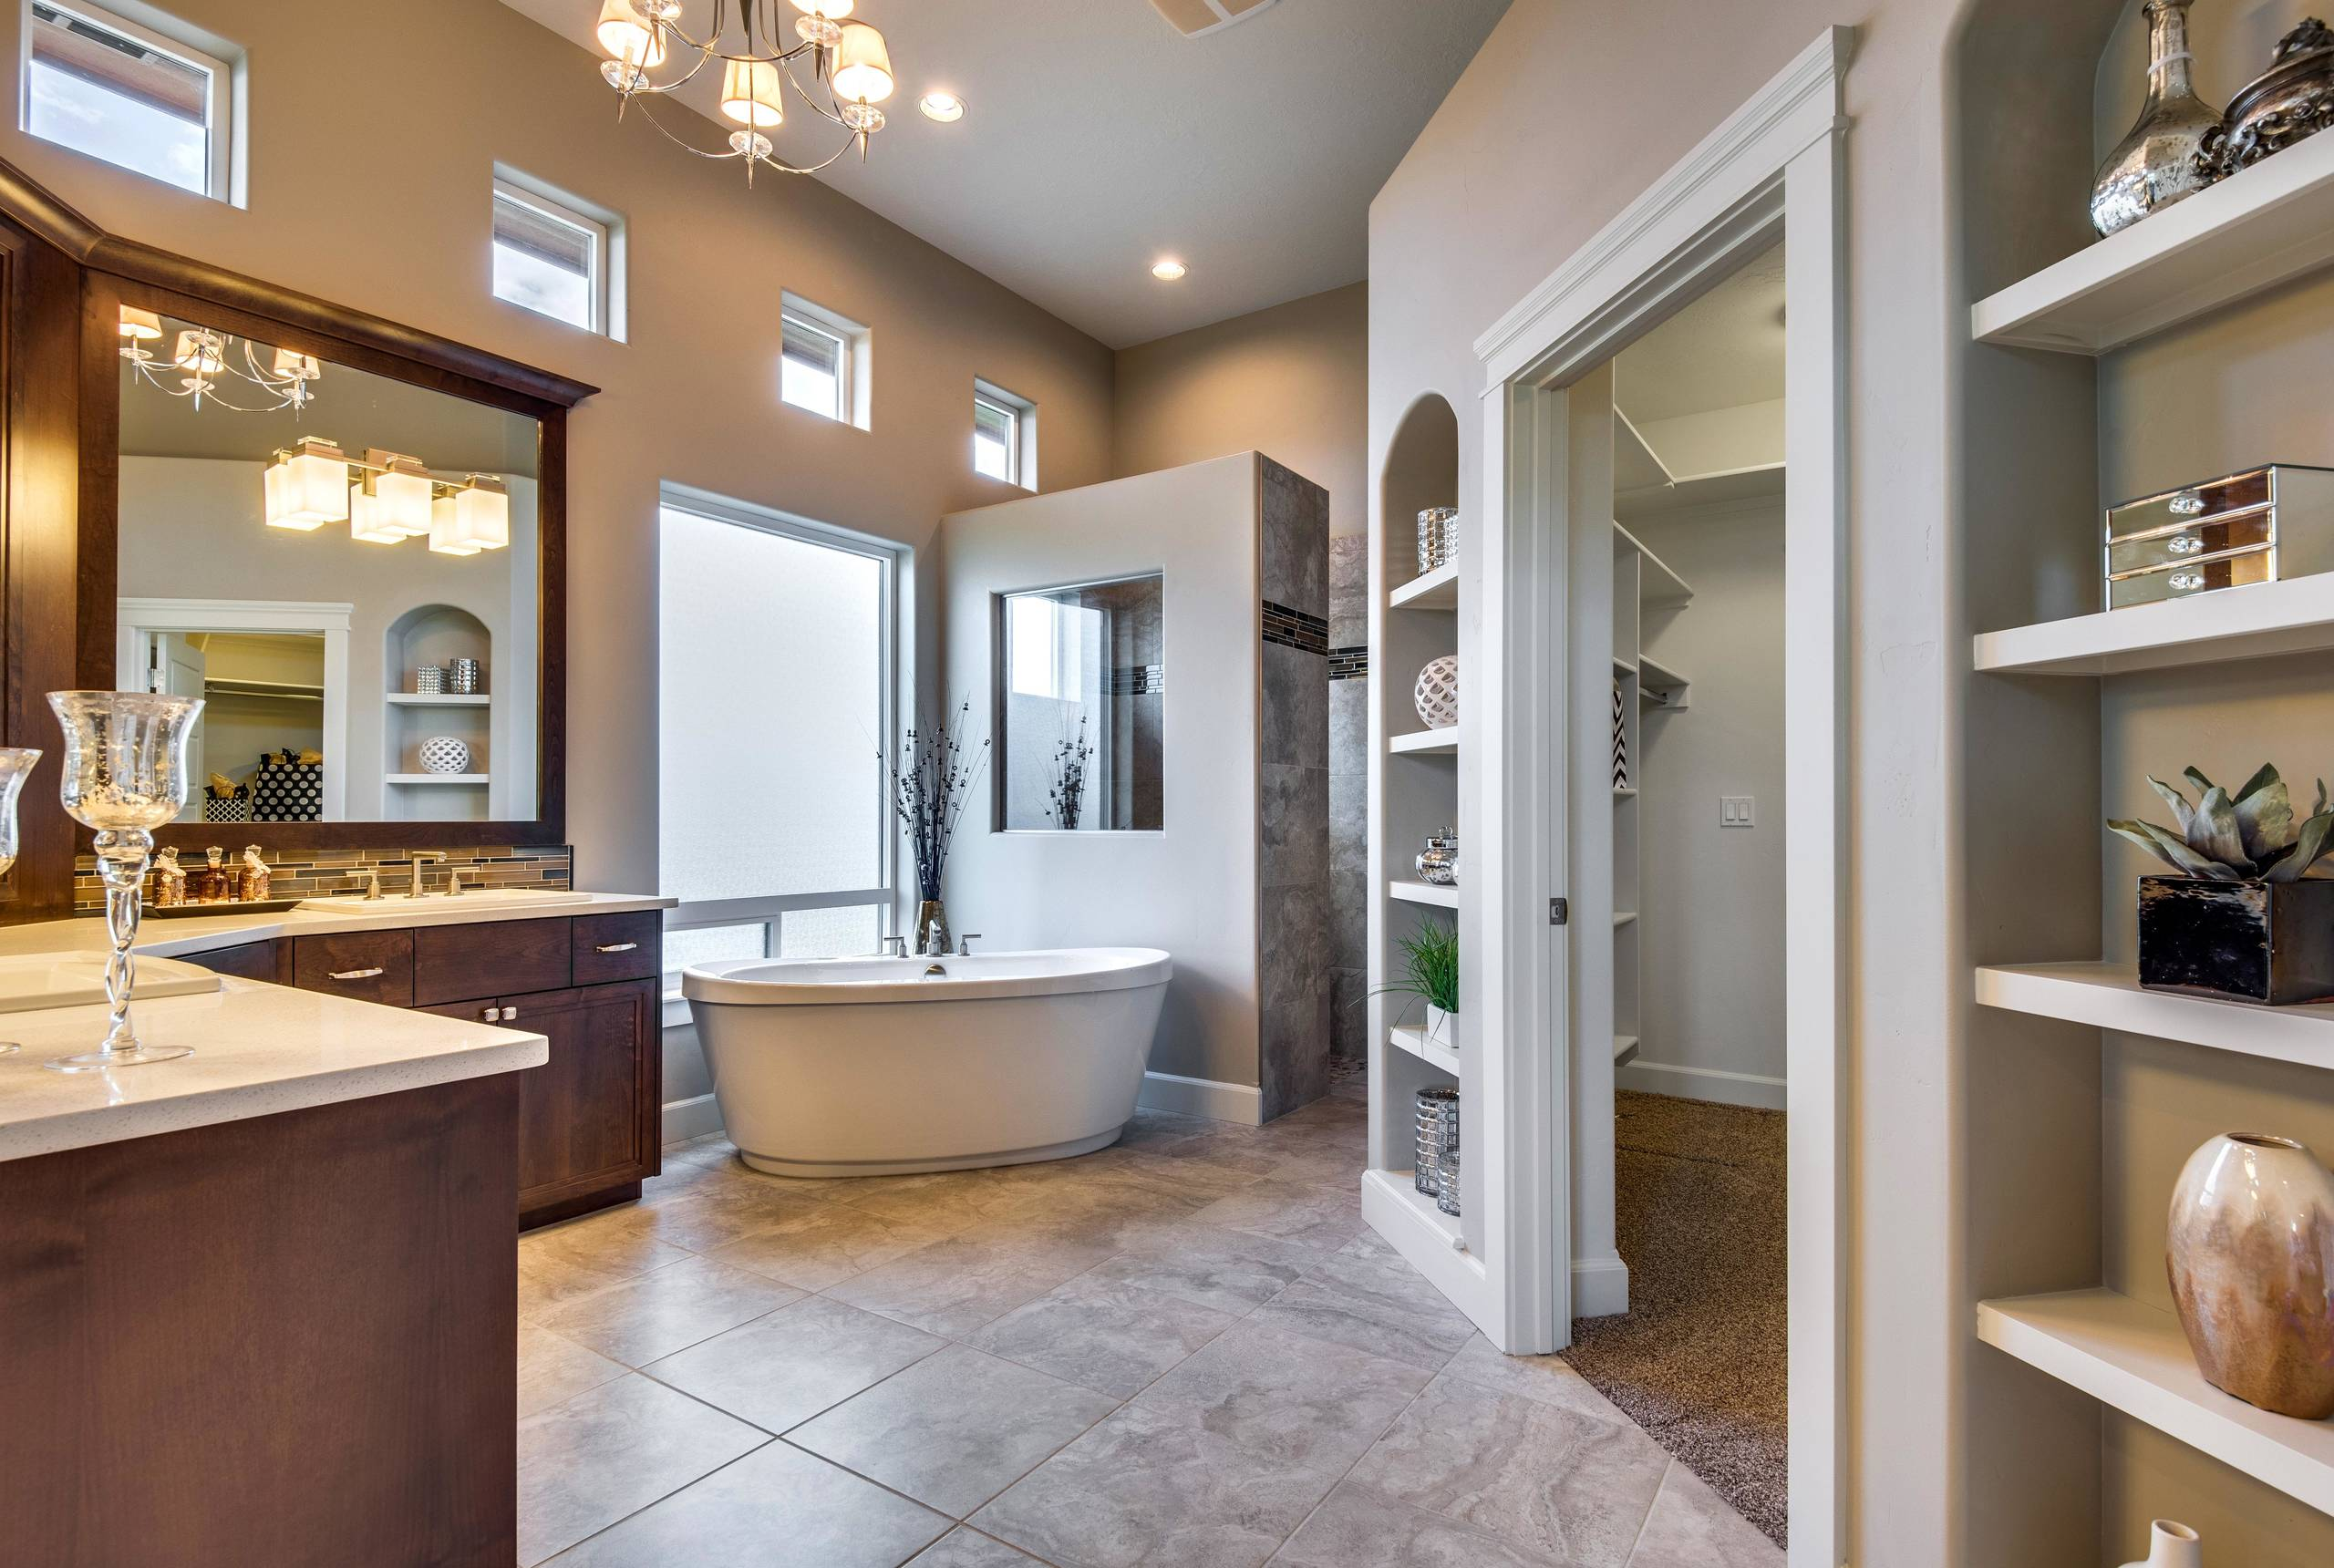 Quality interior home design by professionals